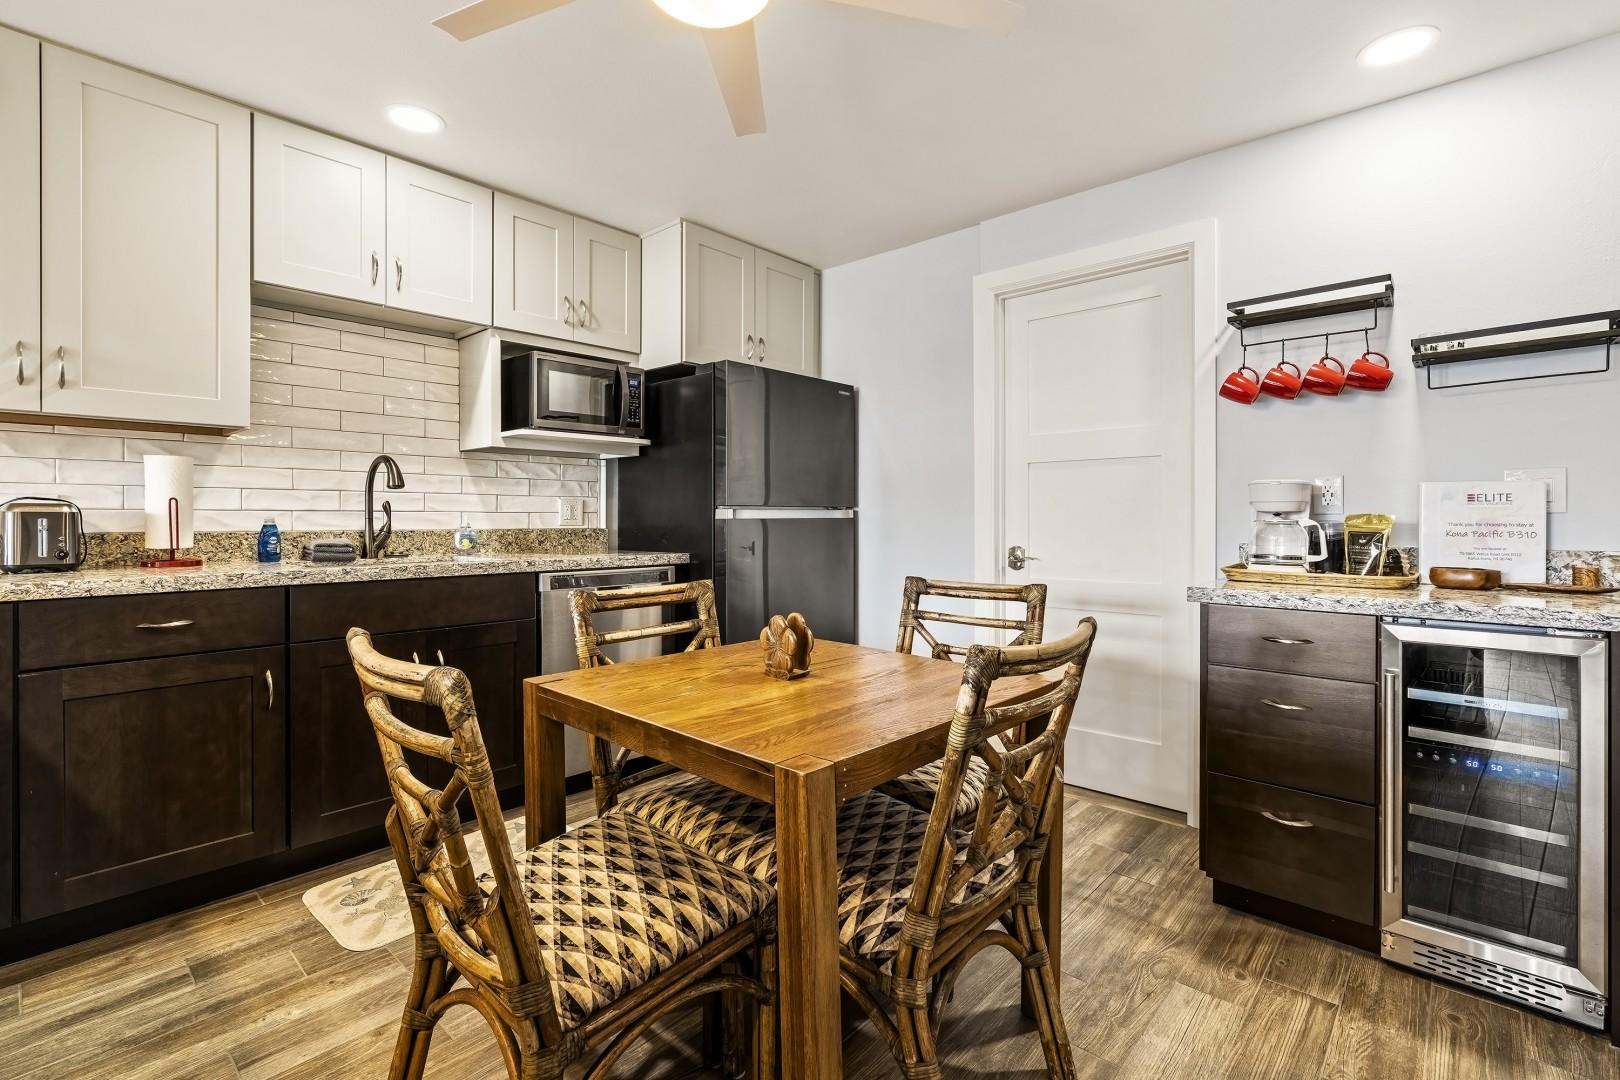 Indoor dining in the spacious kitchen